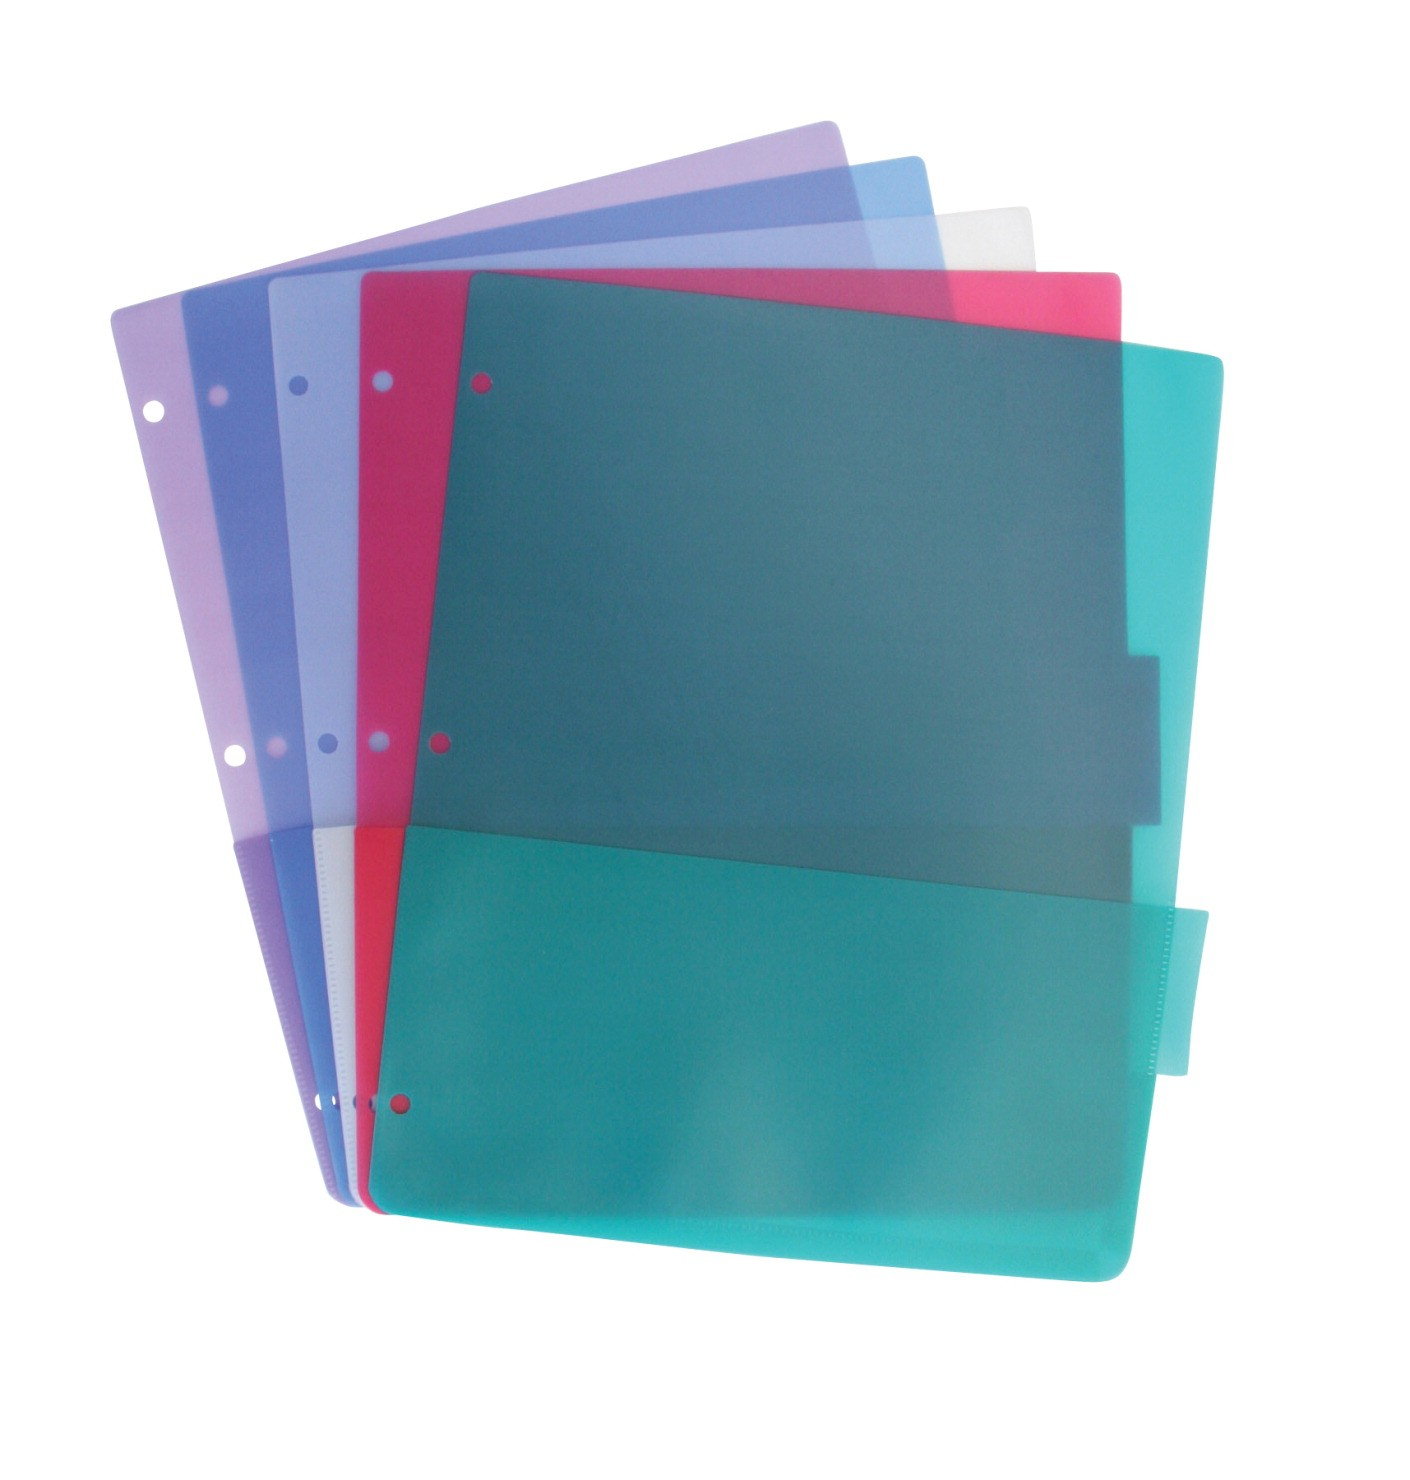 Tab Dividers with 2 Pockets, 8-1/2 X 11, Plastic, Assorted Colors - 5/Set